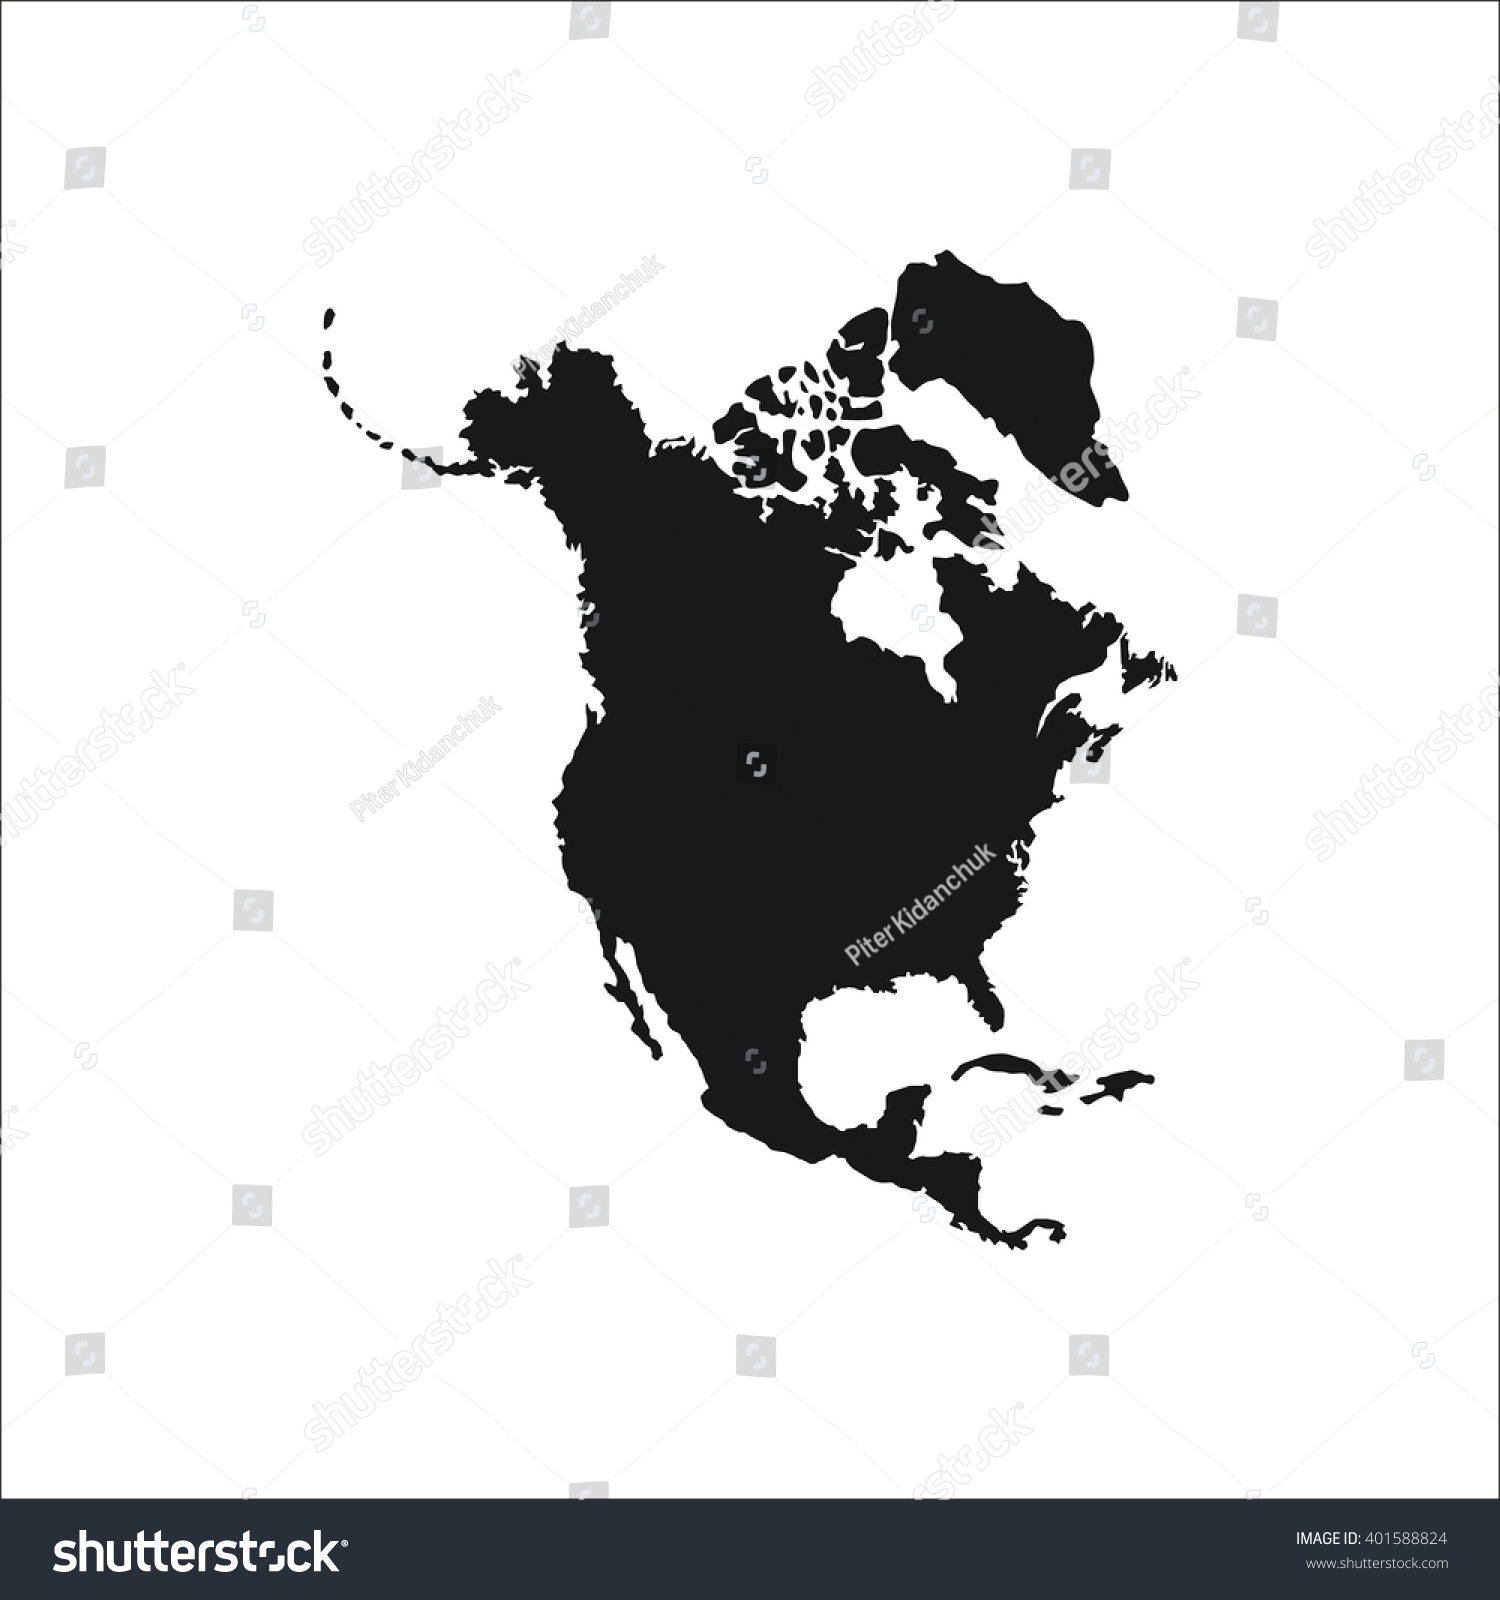 Best Of Diagram Us Map Free Icon More Maps Diagram And Concept Map Of America